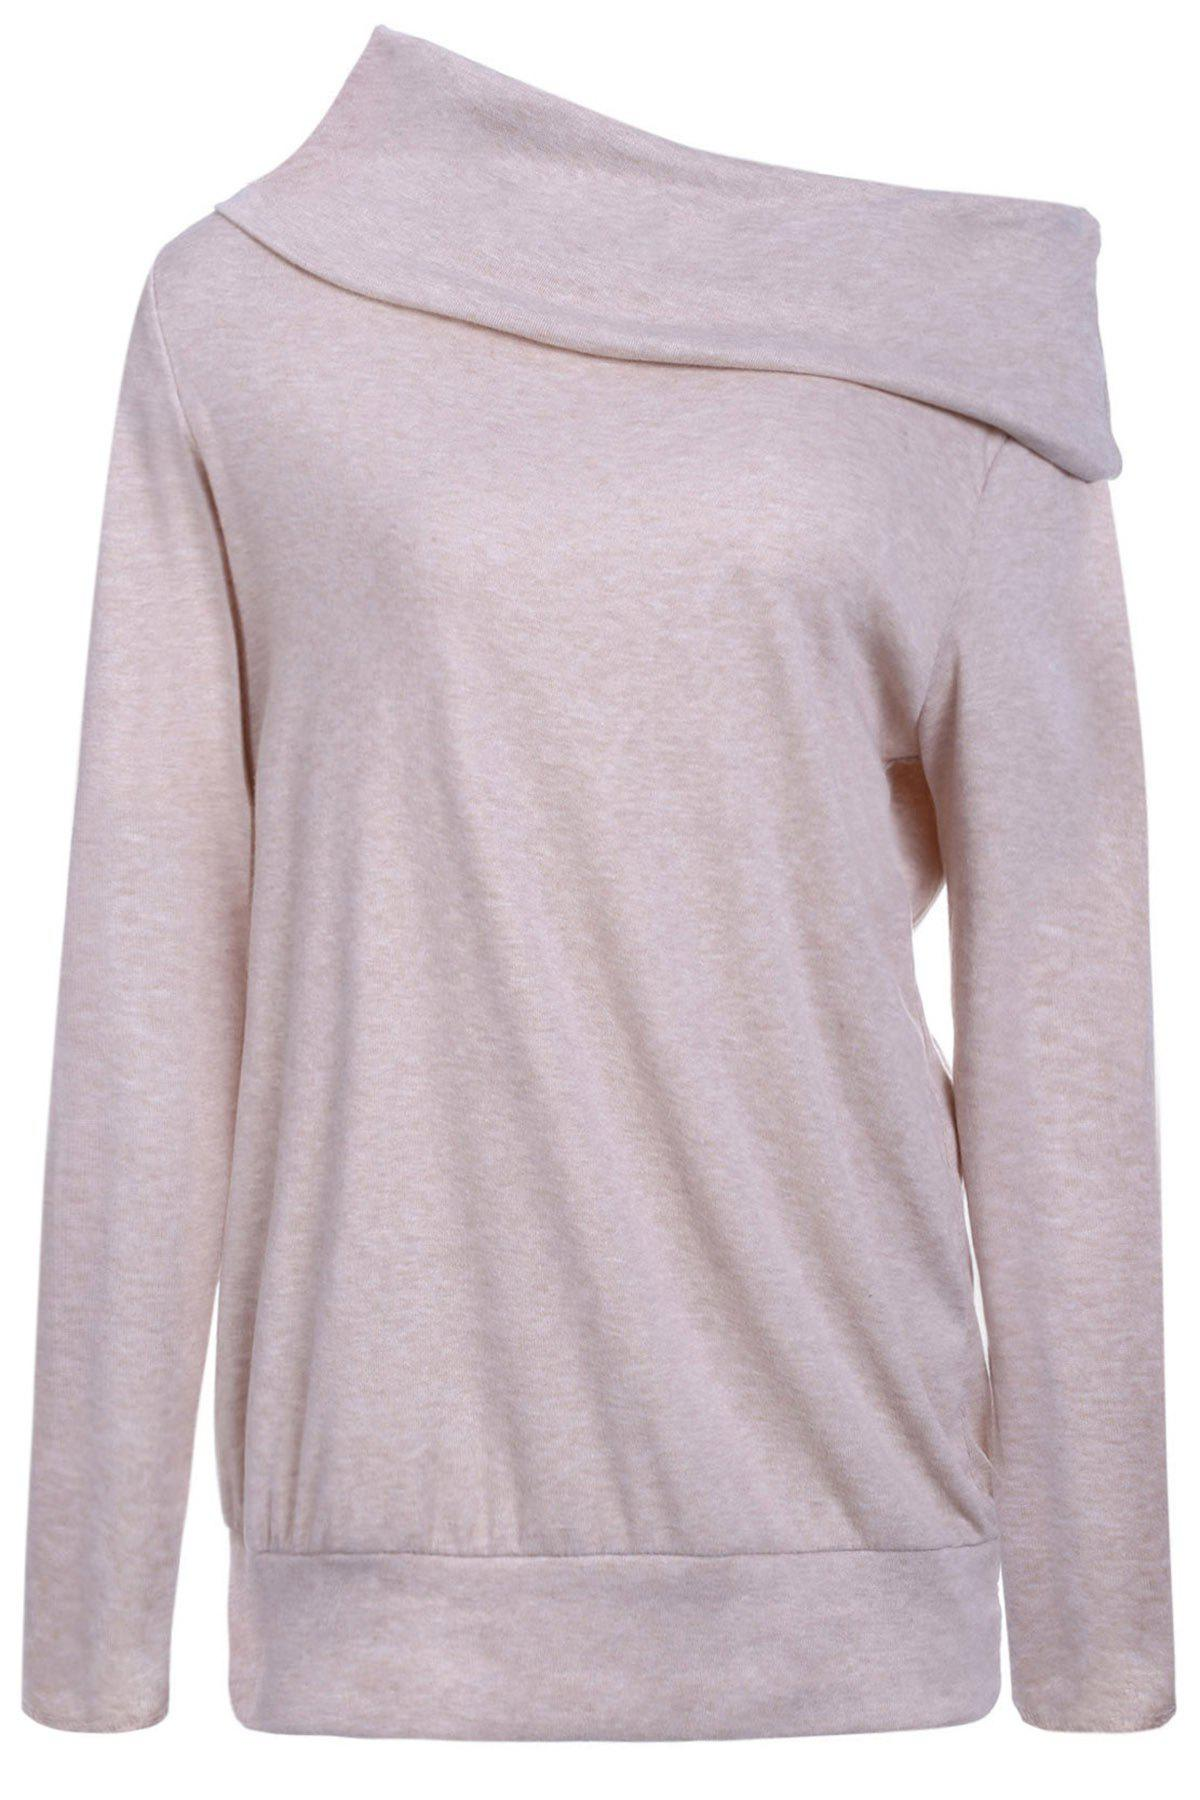 Off The Shoulder Multiway T-ShirtWOMEN<br><br>Size: XL; Color: LIGHT PURPLE; Material: Cotton Blends,Polyester; Shirt Length: Long; Sleeve Length: Full; Collar: Off The Shoulder; Style: Fashion; Pattern Type: Solid; Season: Fall,Spring; Weight: 0.3300kg; Package Contents: 1 x T-Shirt;